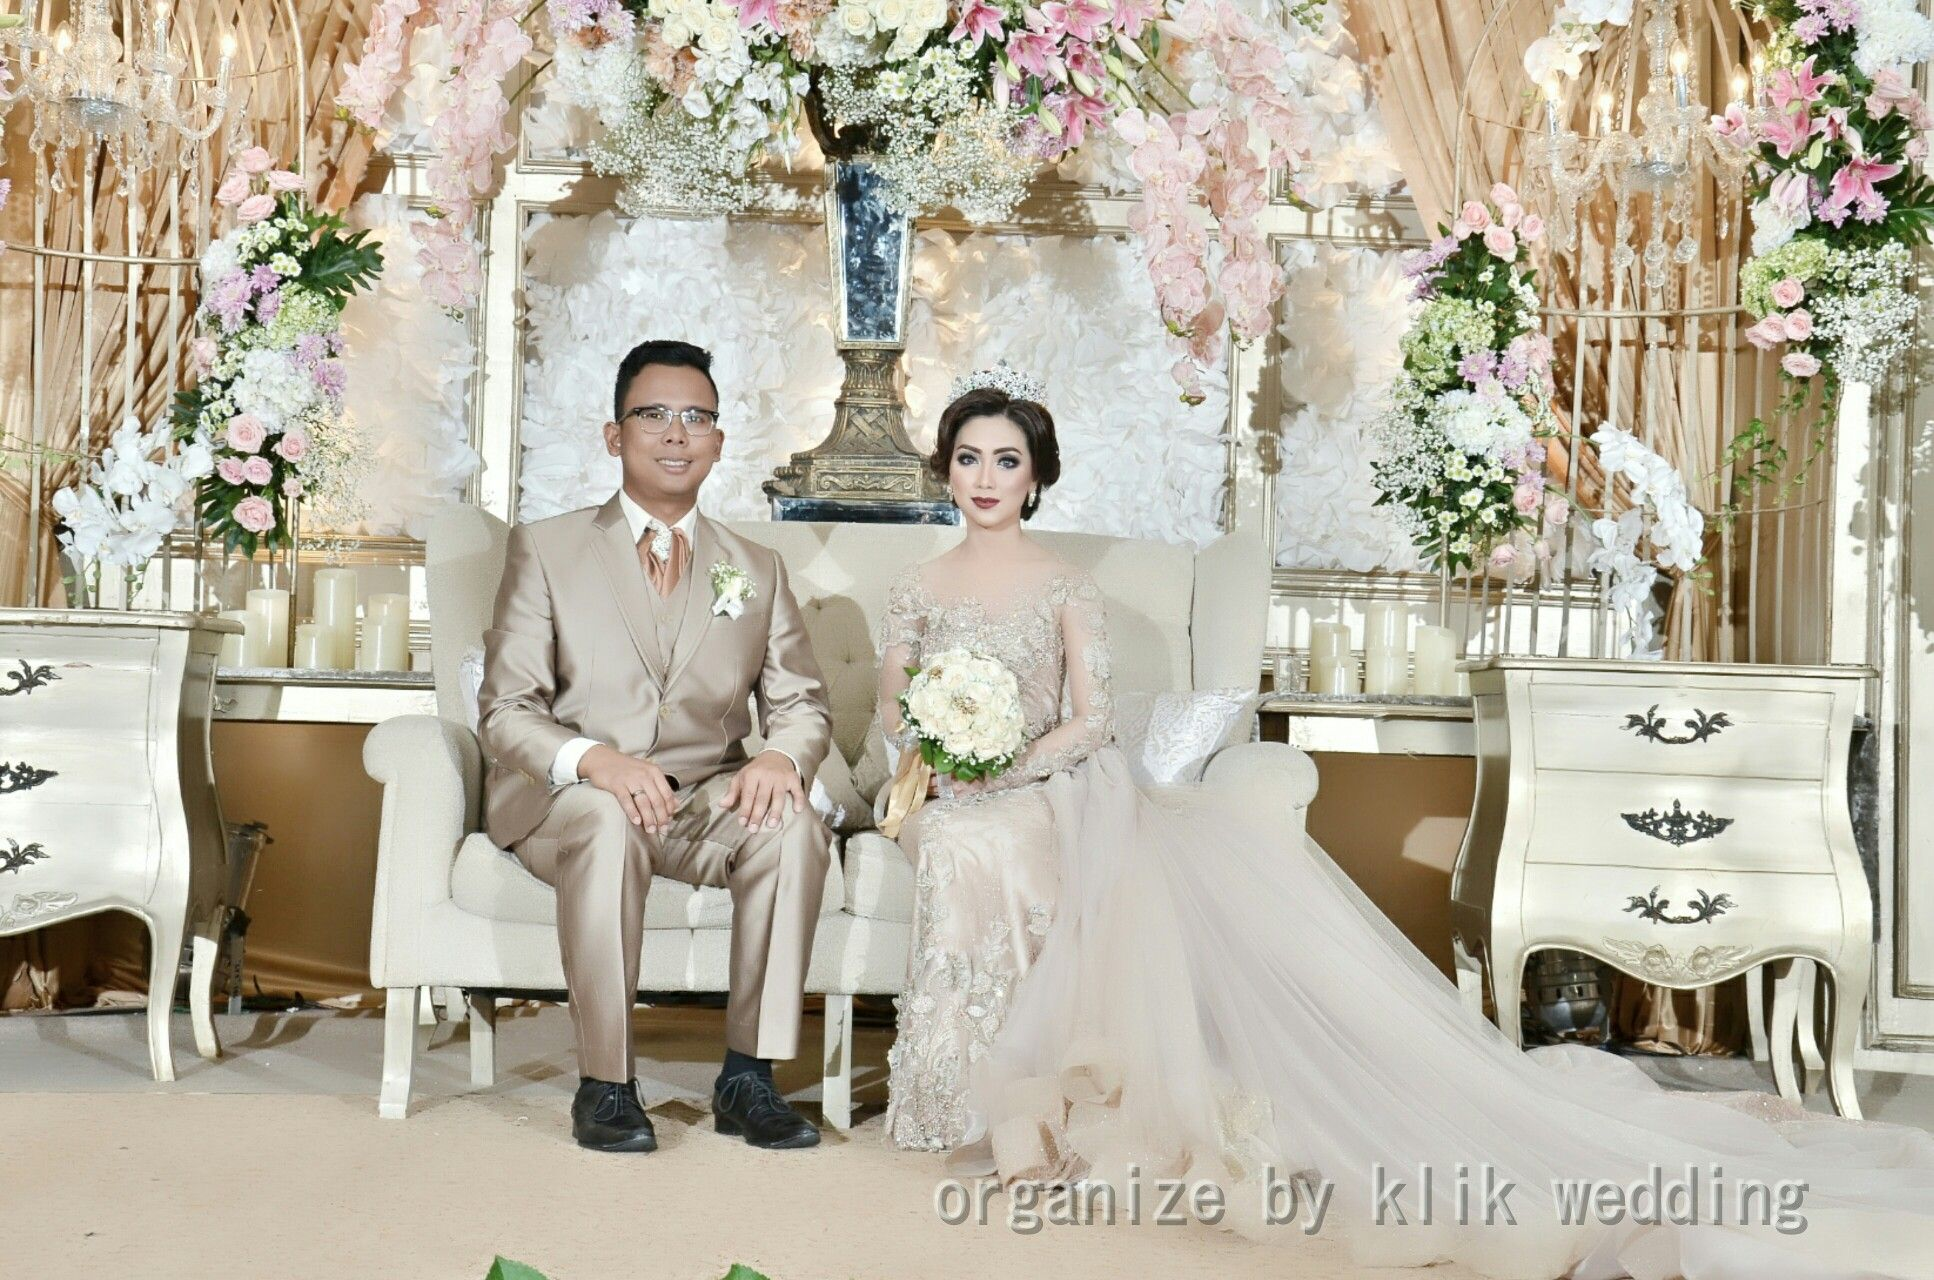 Klik Production Professional Event Wedding Organizer Bandung Indonesia Line Klikpro Wa 6282116688679 Pin 52bd9d62 Perkawinan